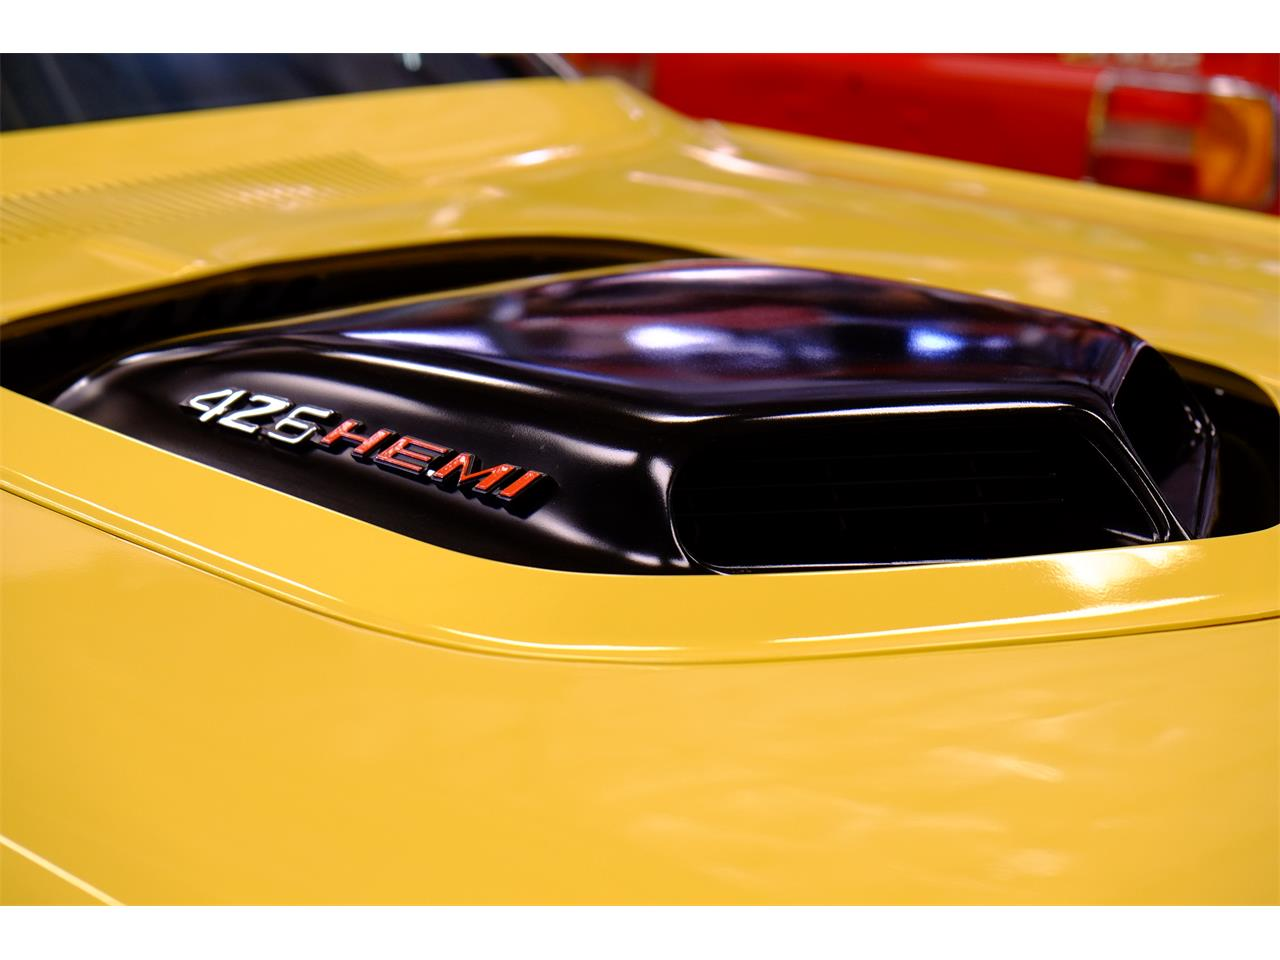 Large Picture of Classic 1971 Challenger R/T 426 Hemi located in New York - $325,000.00 Offered by Automotion - JY6E